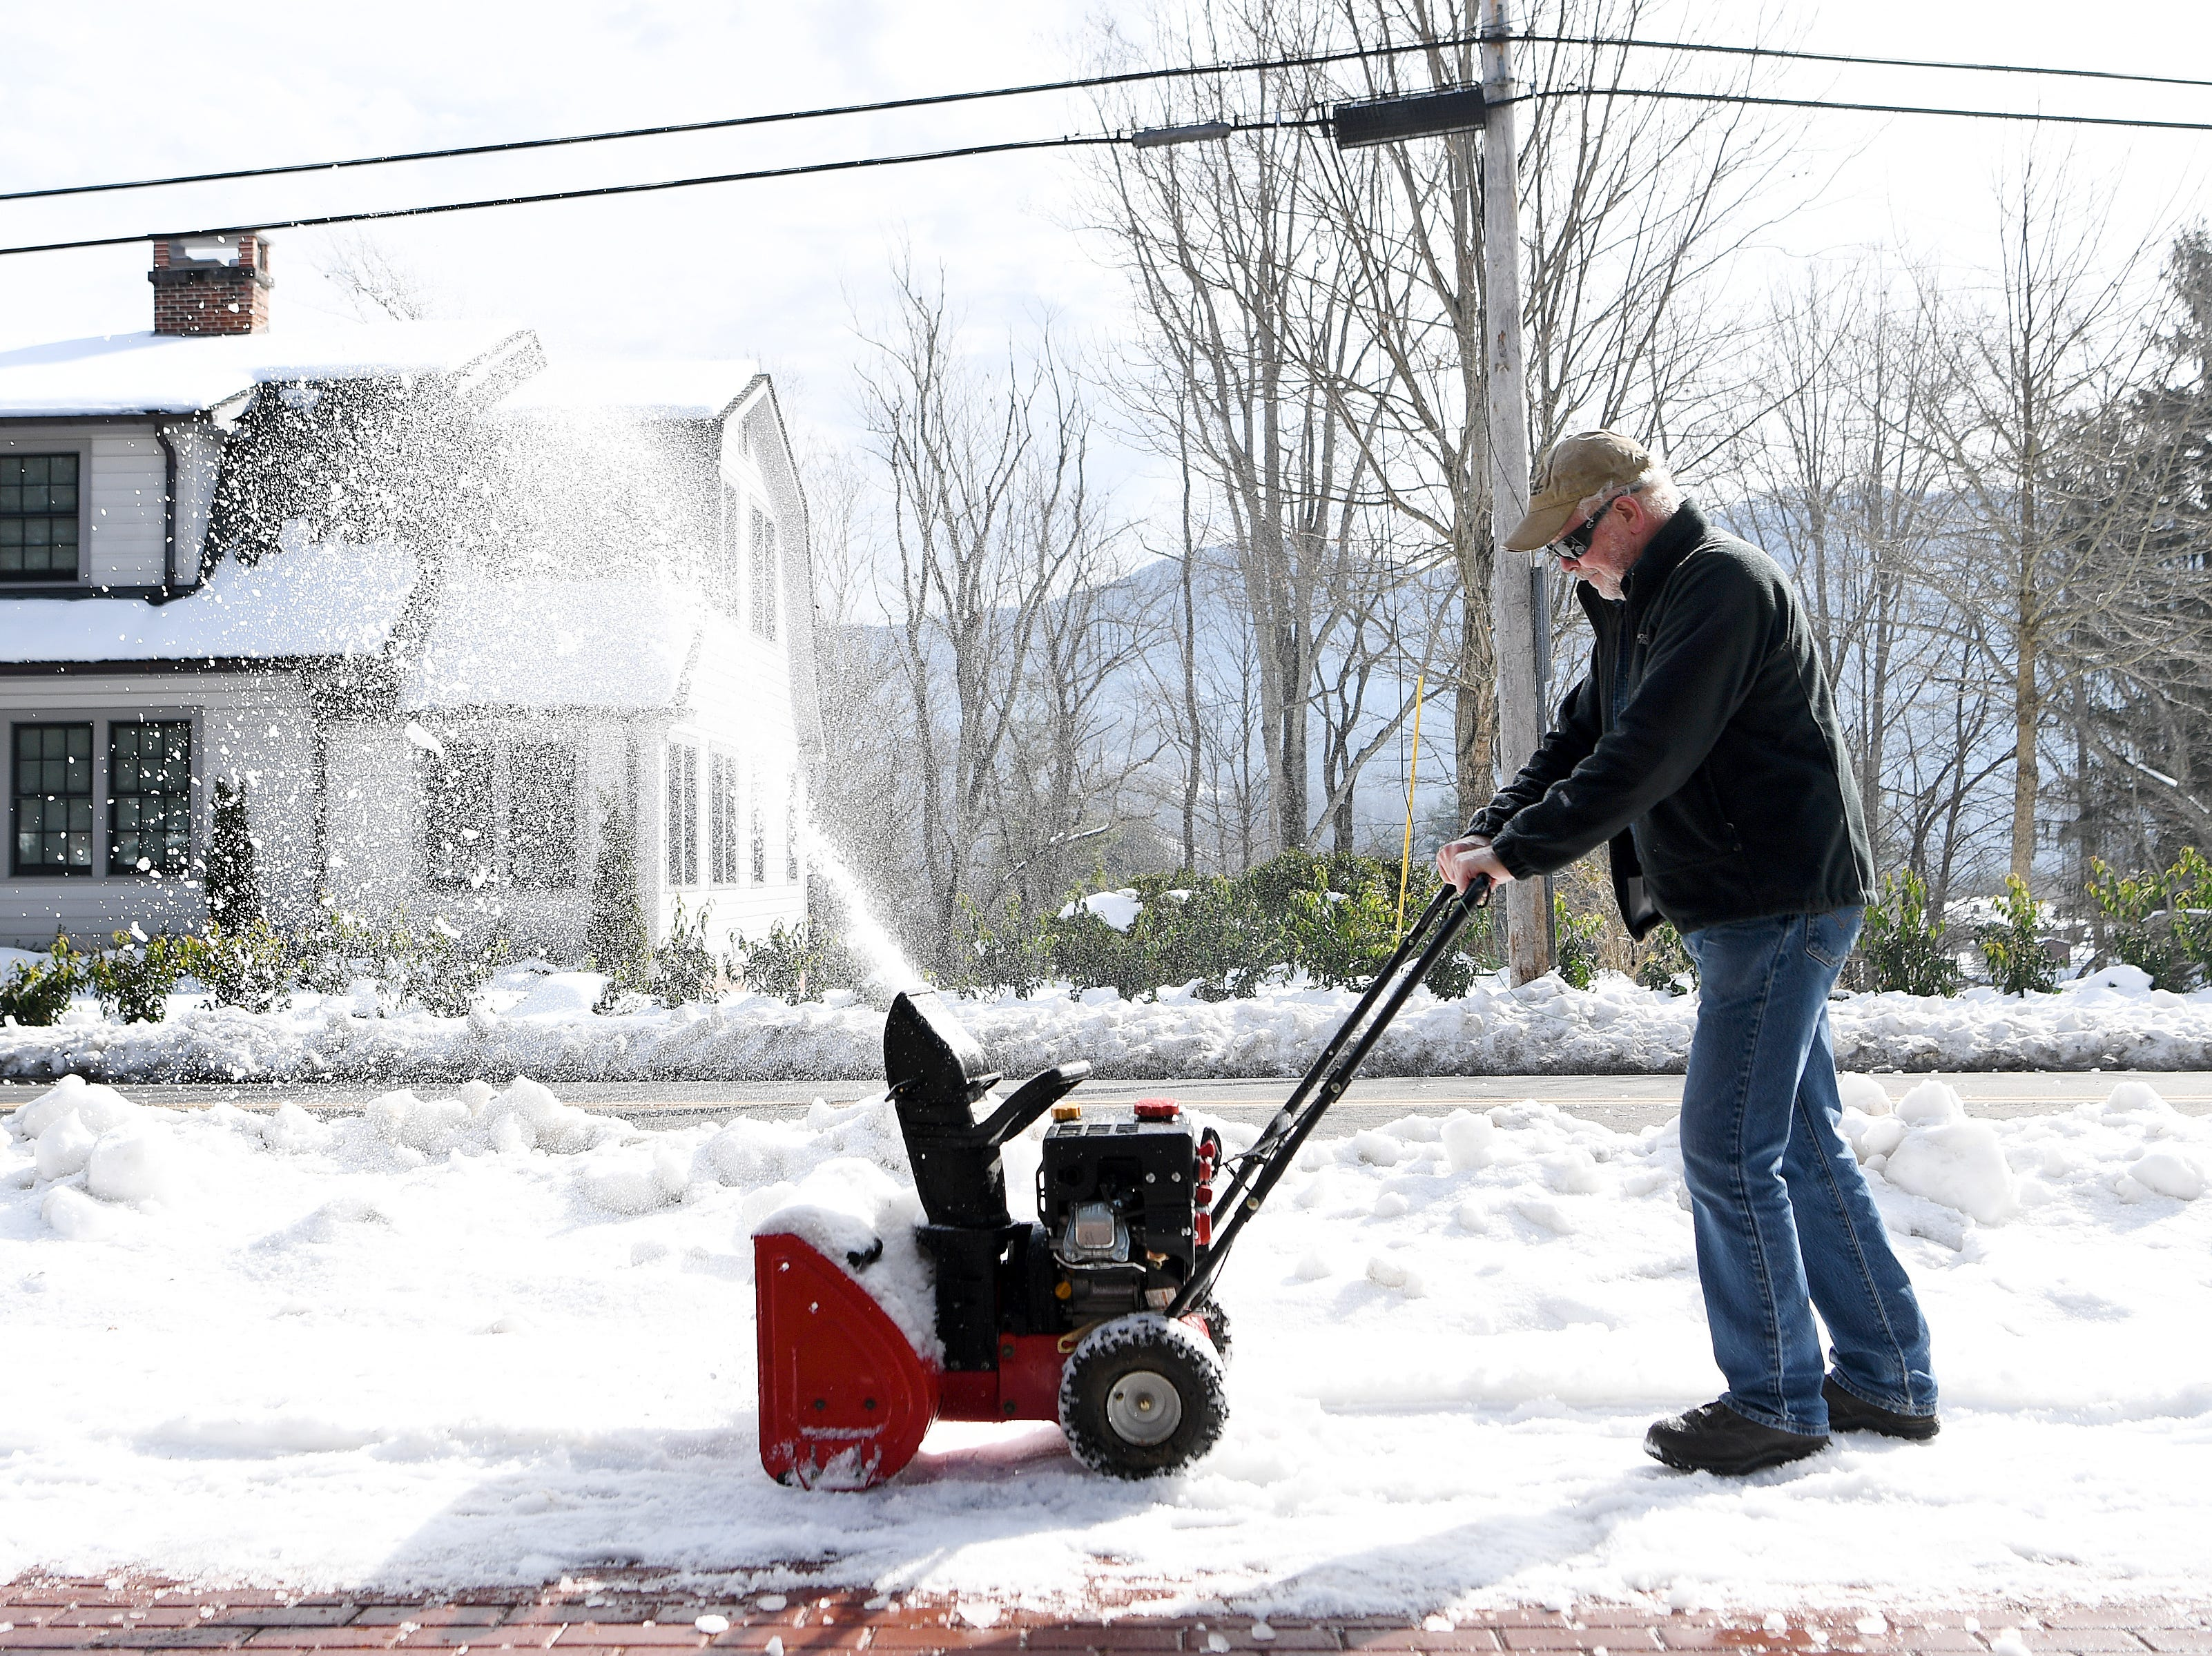 Rick Gordon, owner of the Oak Park Inn in Waynesville, uses a snowblower on the sidewalk in front of Kandi's Cakes and Bake Shop so the sun could melt the rest of the ice on Dec. 12, 2018.